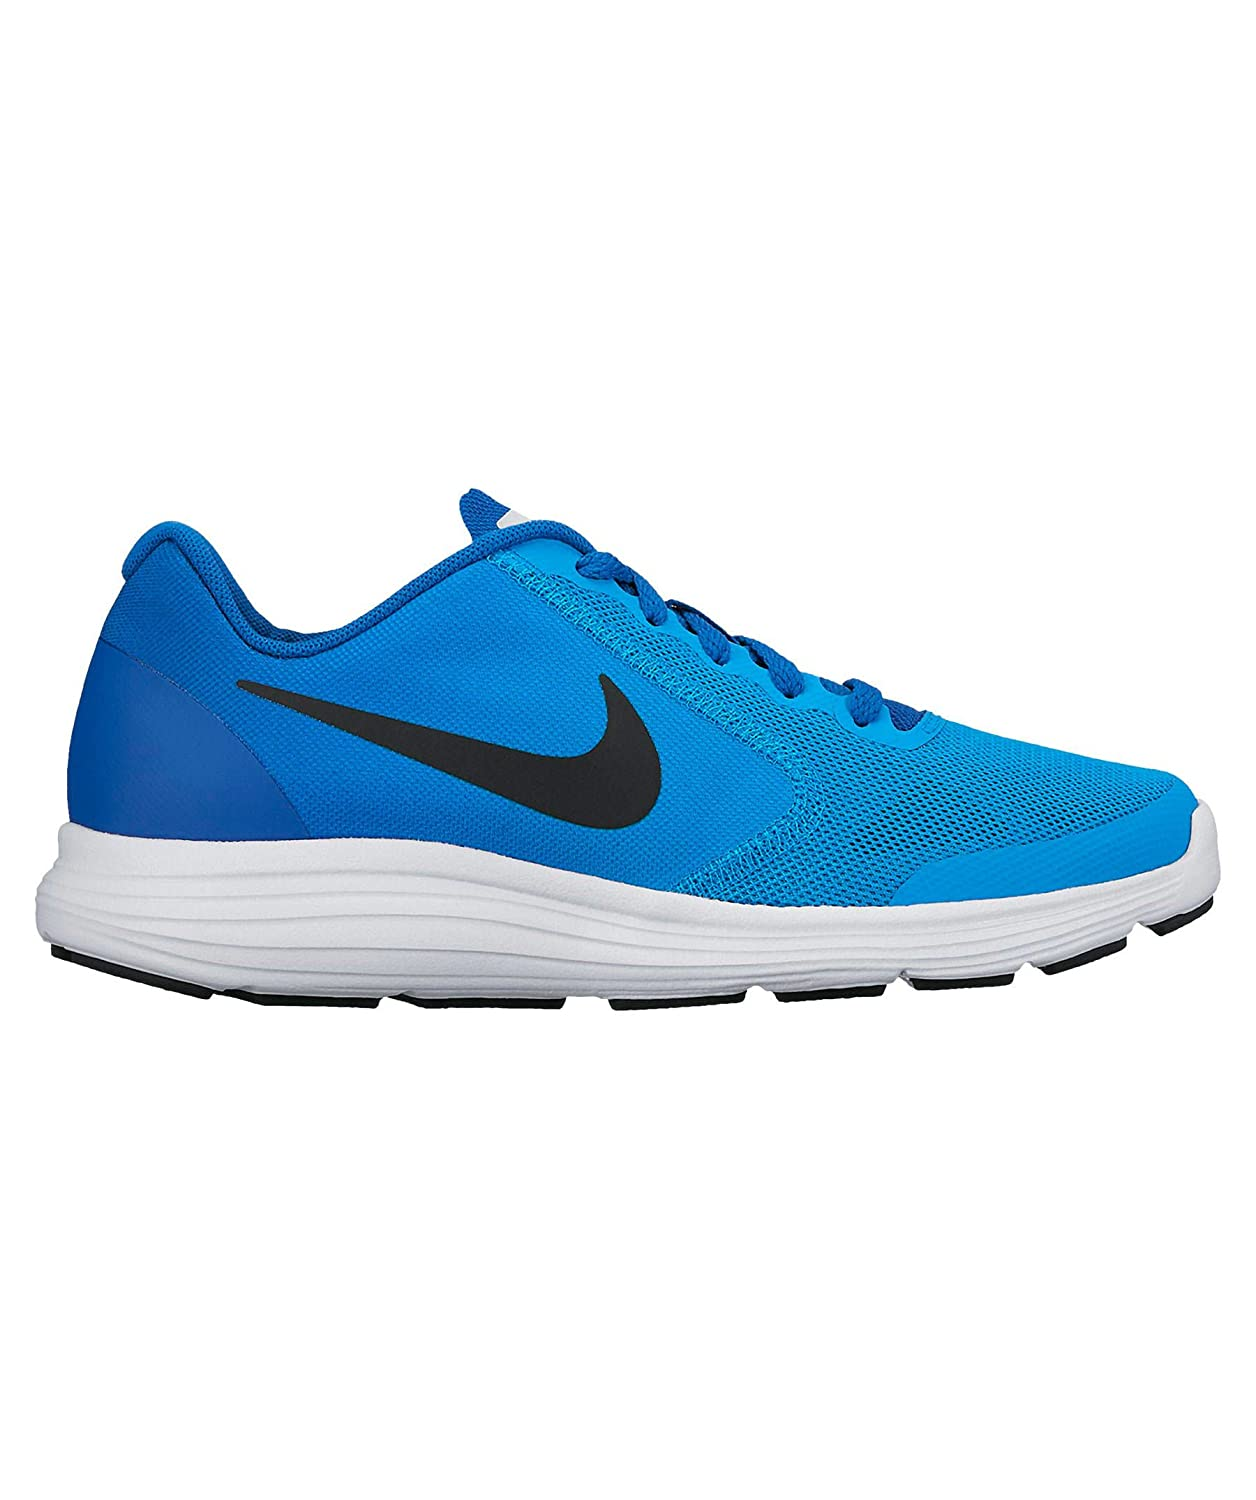 NIKE ' Revolution 3 (GS) Running Shoes B00H6TMBC8 3.5 M US Big Kid|Blue Orbit/Black/Blue Jay/White